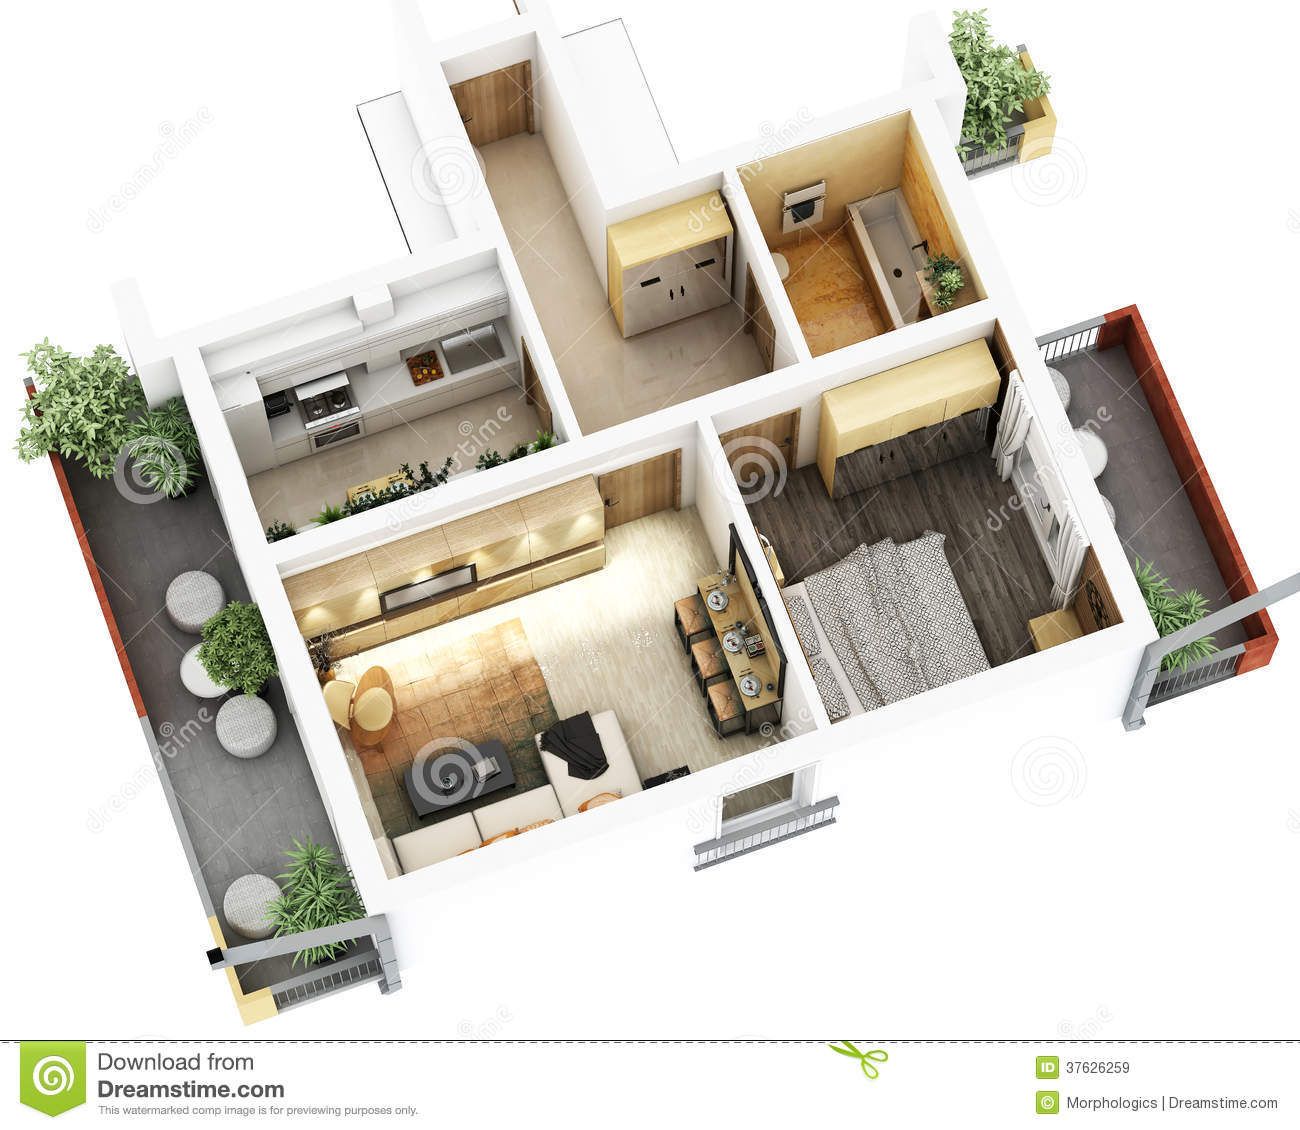 Https Www Dreamstime Com Royalty Free Stock Images 3d Floor Plan Image37626259